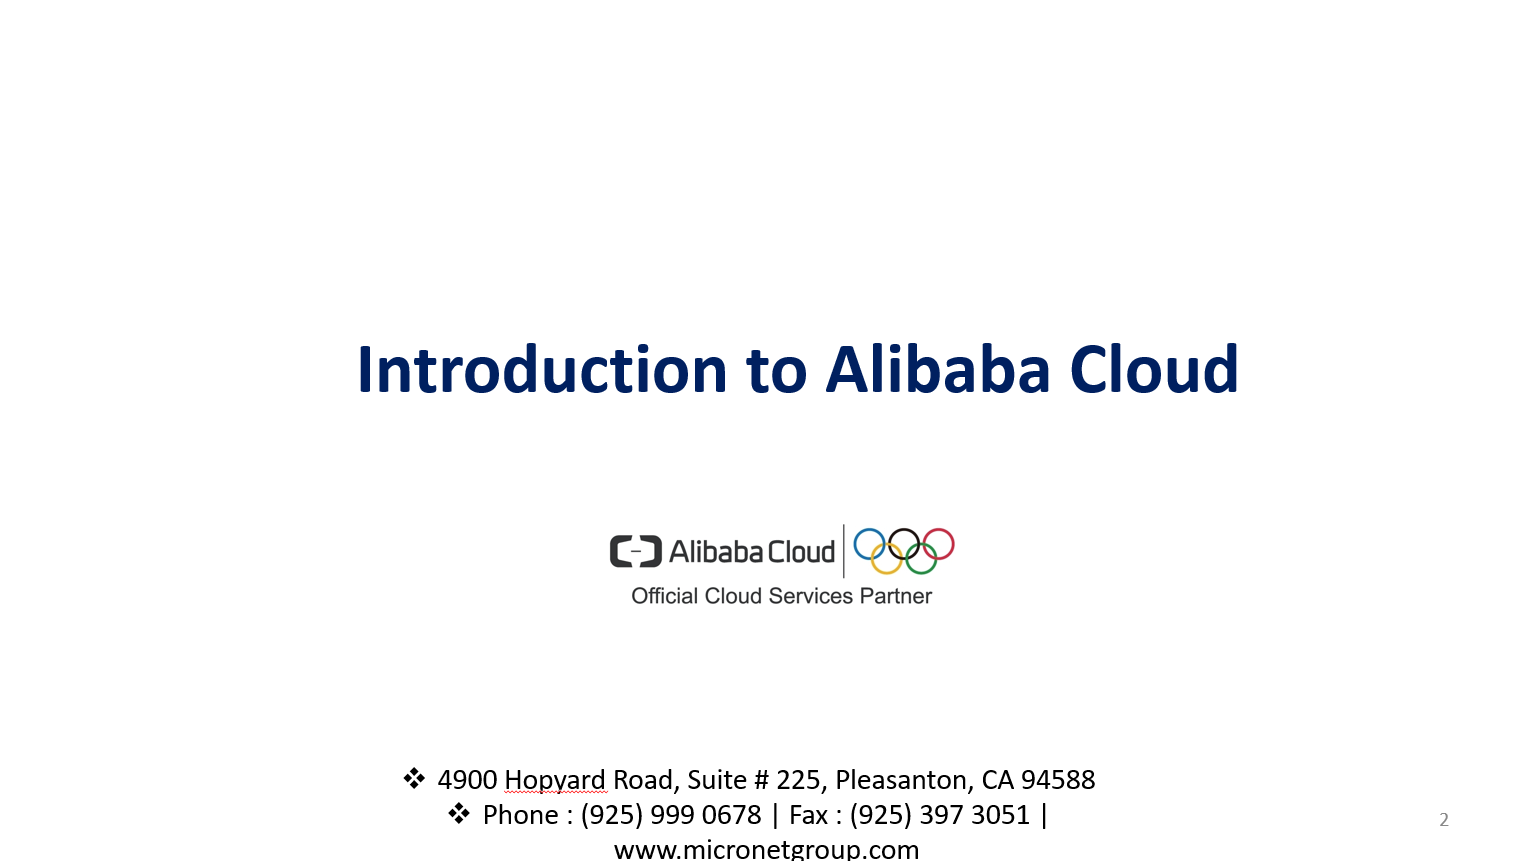 Introduction to Alibaba Cloud